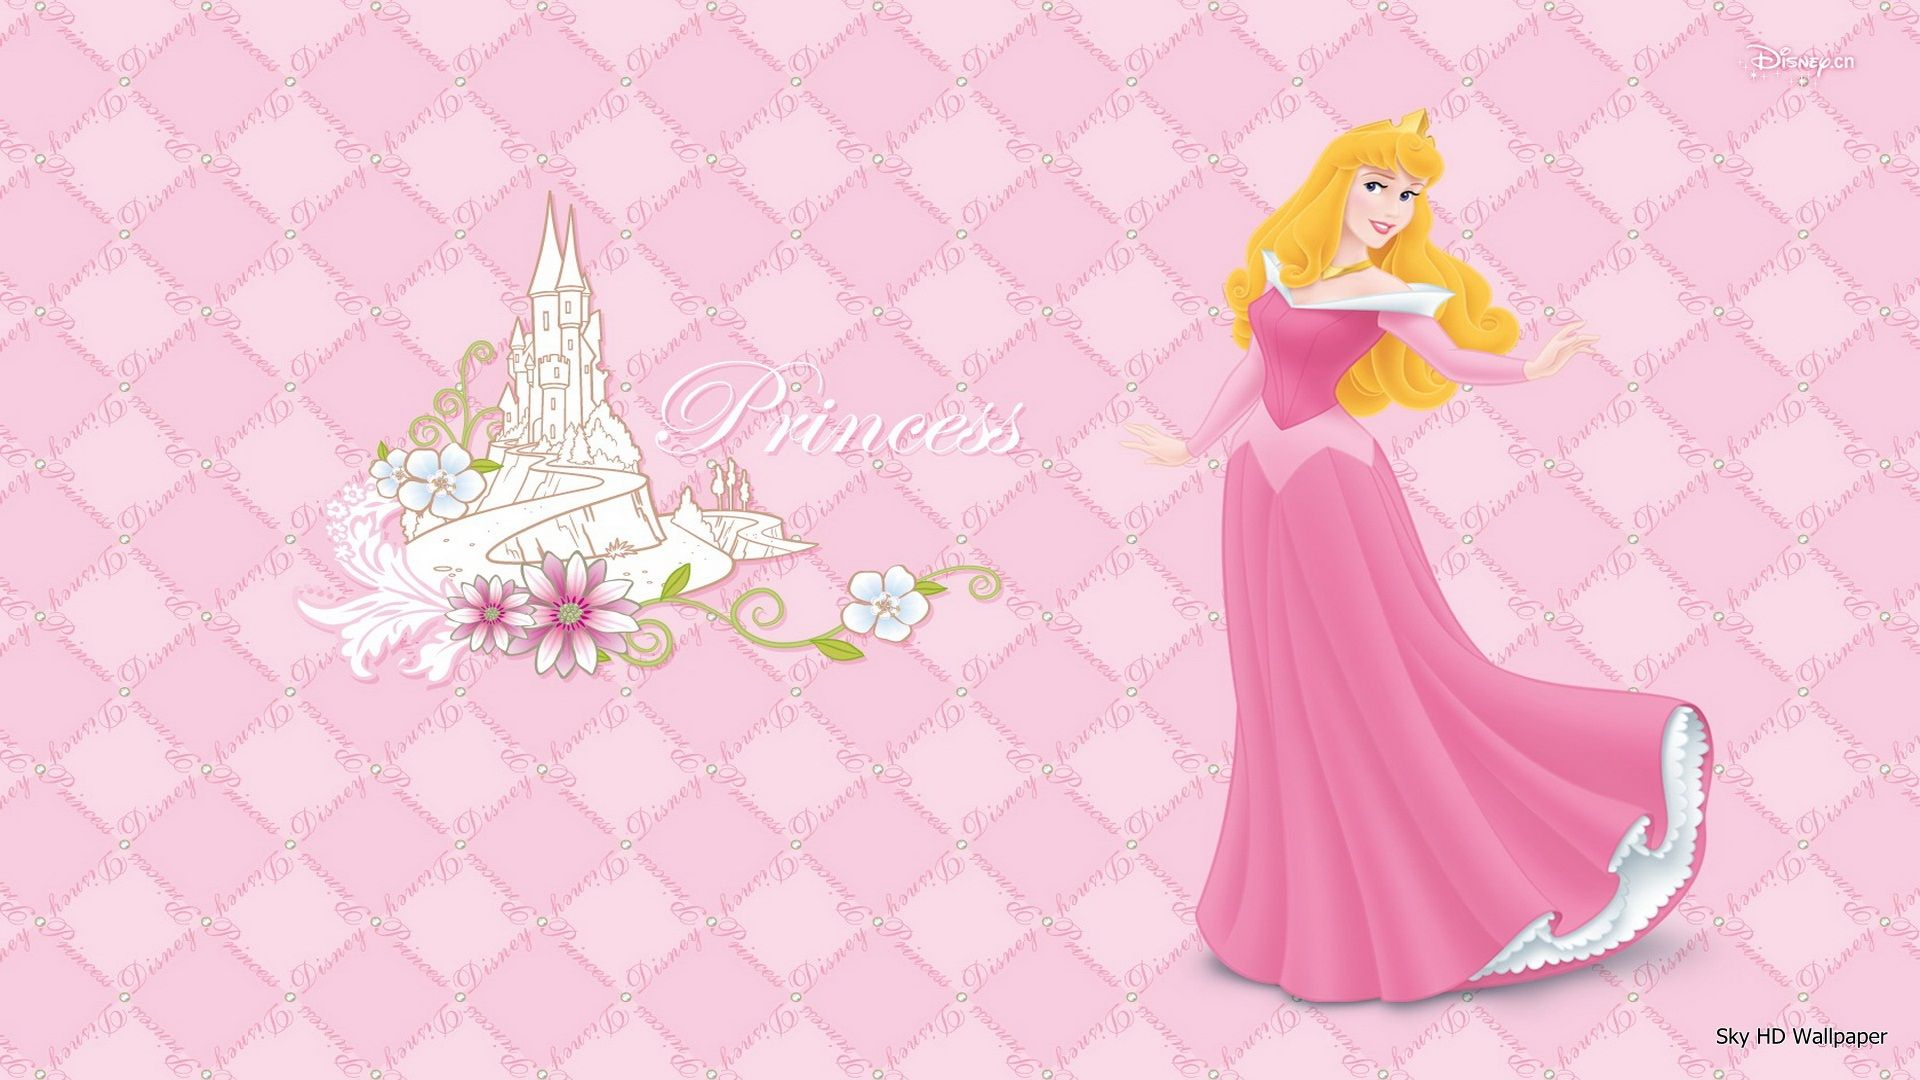 Disney Princess Hd Wallpaper Jpg 1920 1080 With Images